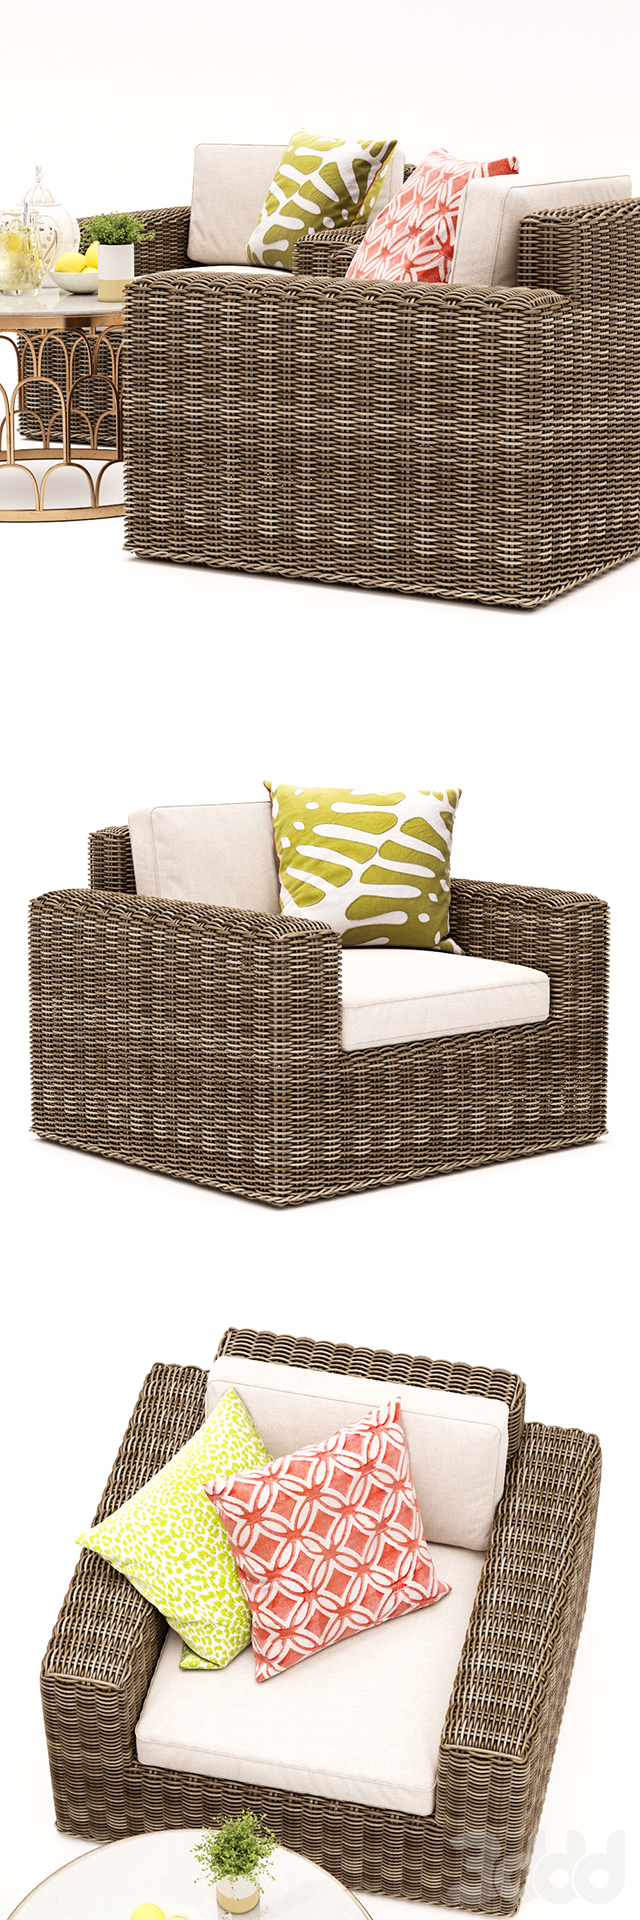 Vista Lounge Chair and Dunland Coffee Table